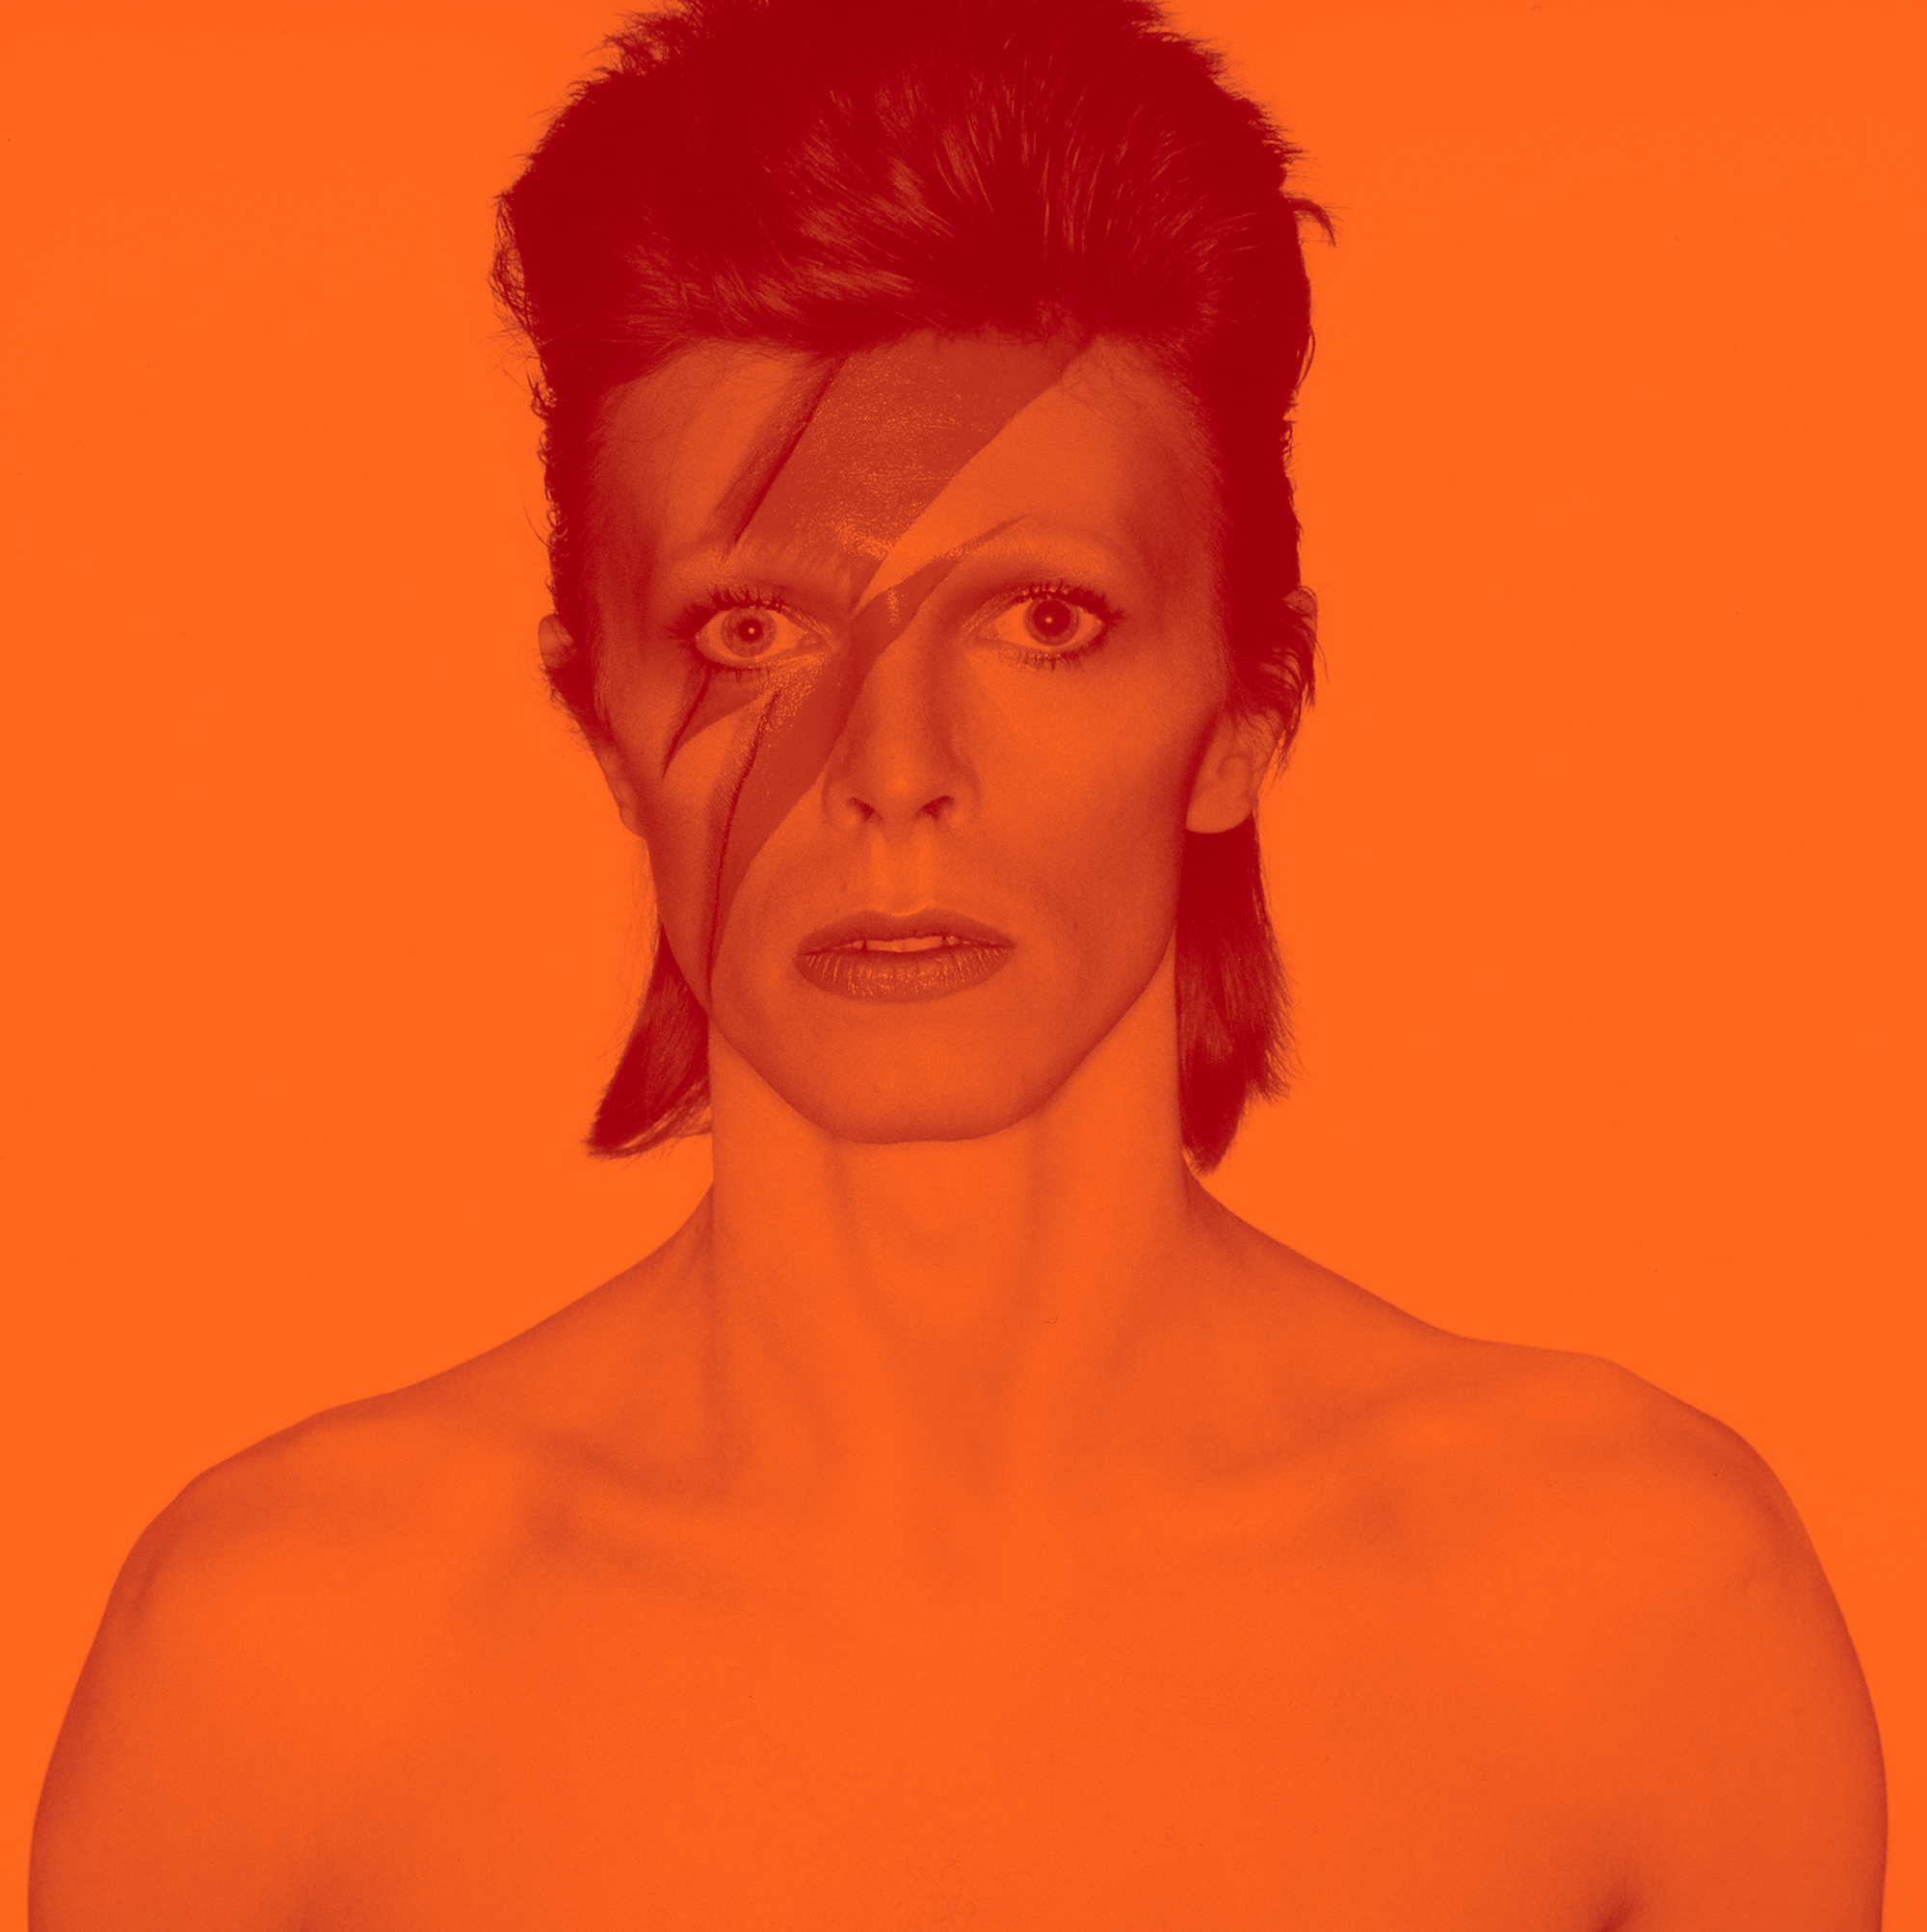 2018_David_Bowie_is_1_Album_cover_shoot_for_Aladdin_Sane_1973_v3_DRAFT_4_2000w.jpg